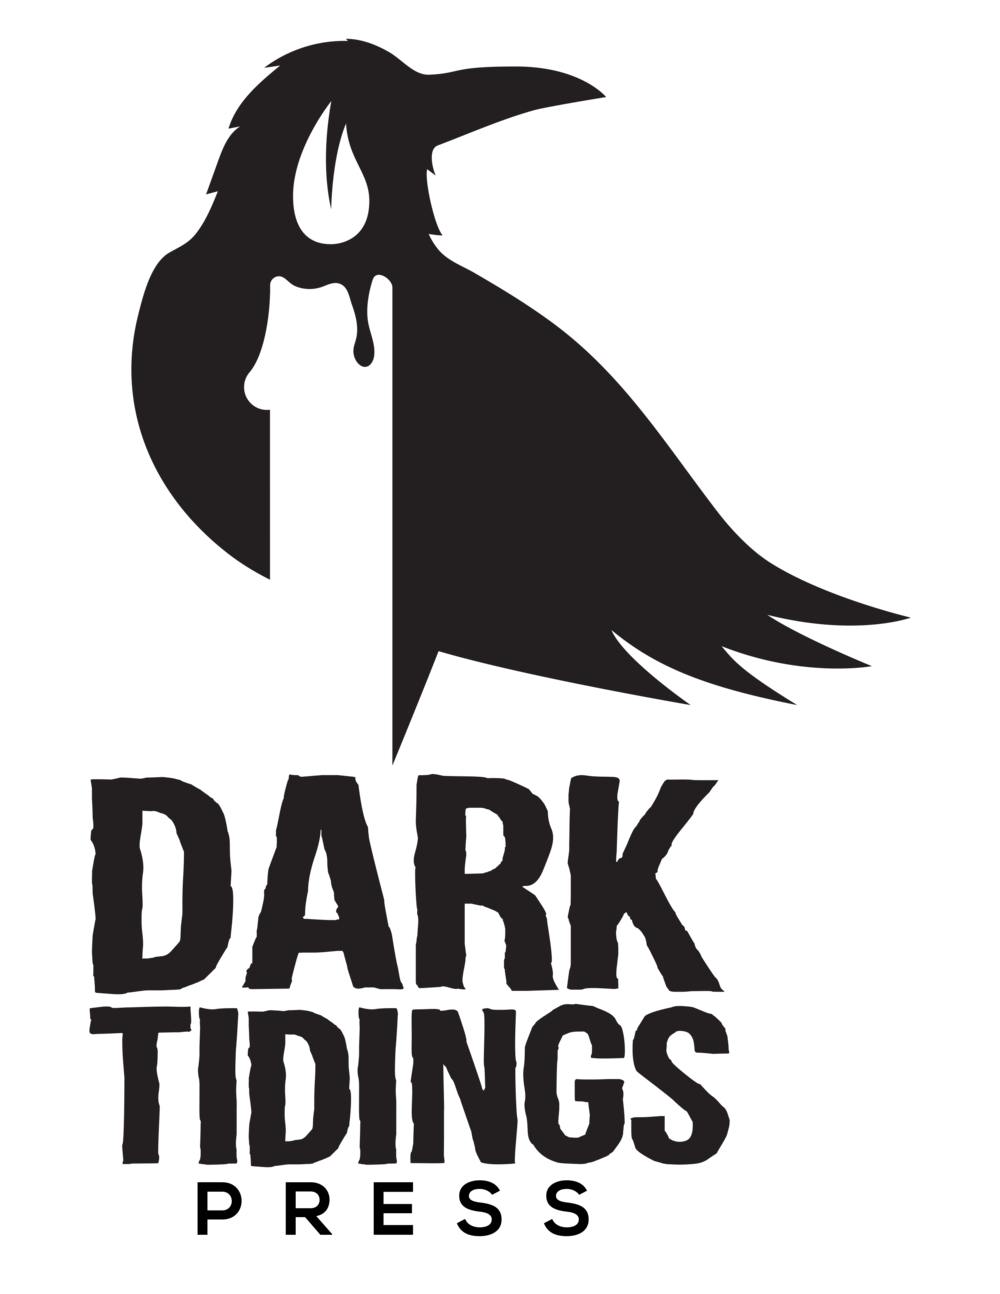 Dark Tidings Press